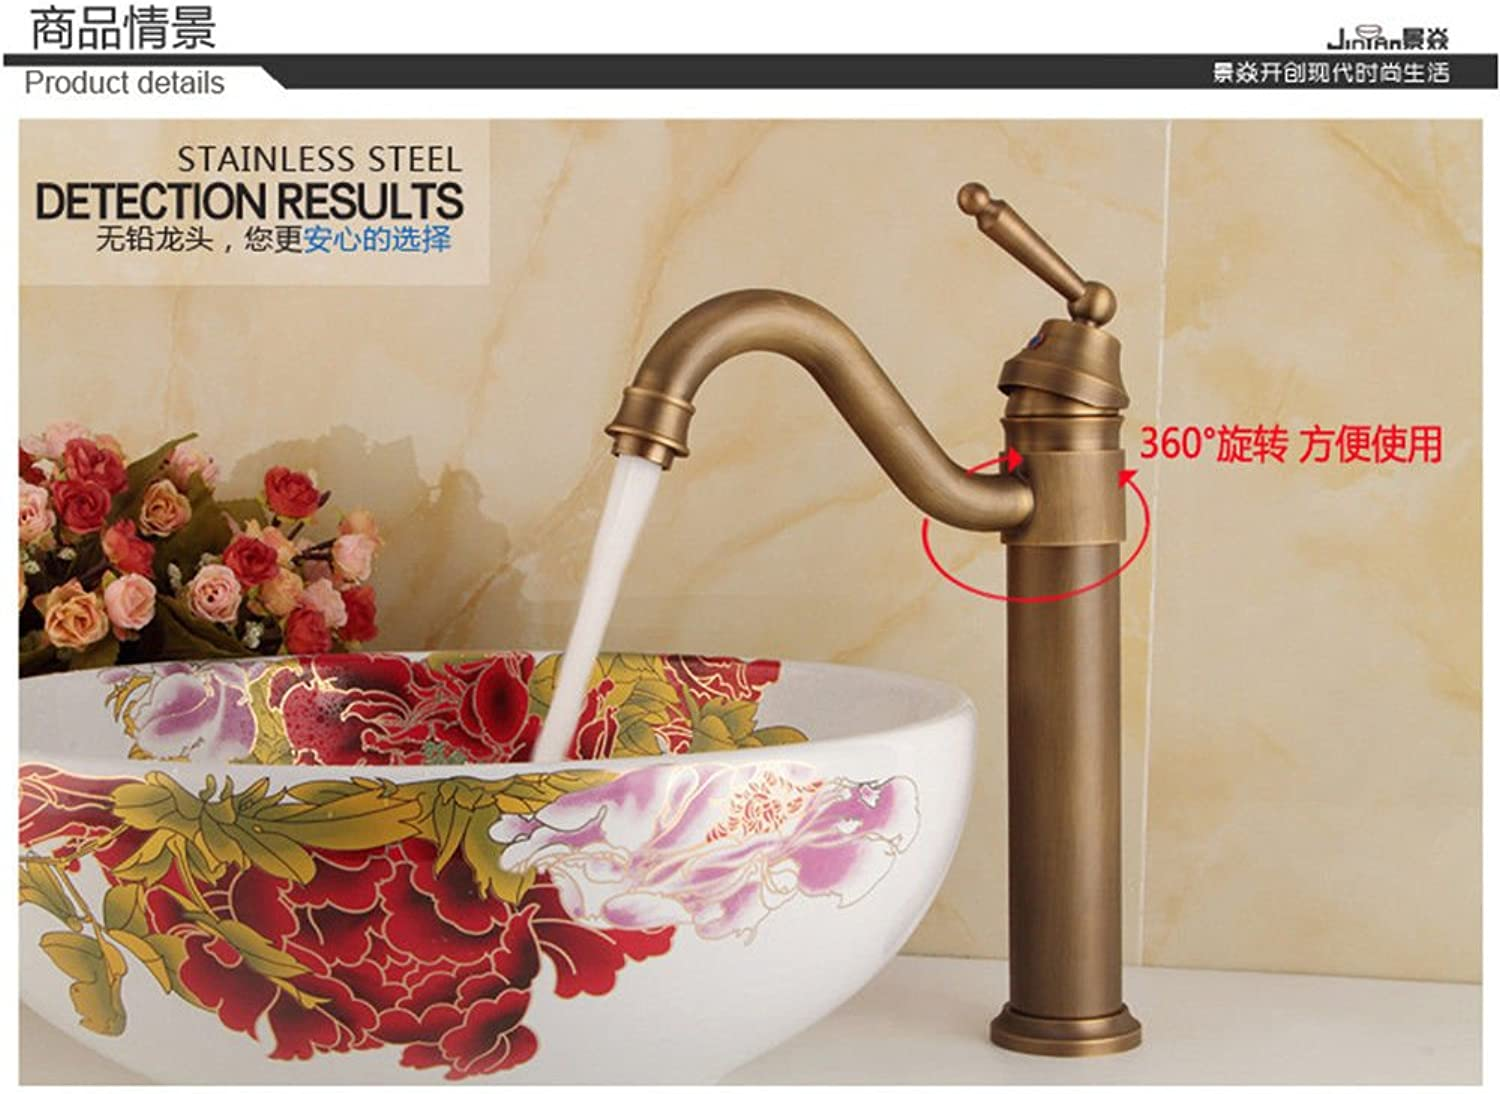 ETERNAL QUALITY Bathroom Sink Basin Tap Brass Mixer Tap Washroom Mixer Faucet The Antique brass faucet antique plus high redation single hole basin mixer console basin fa